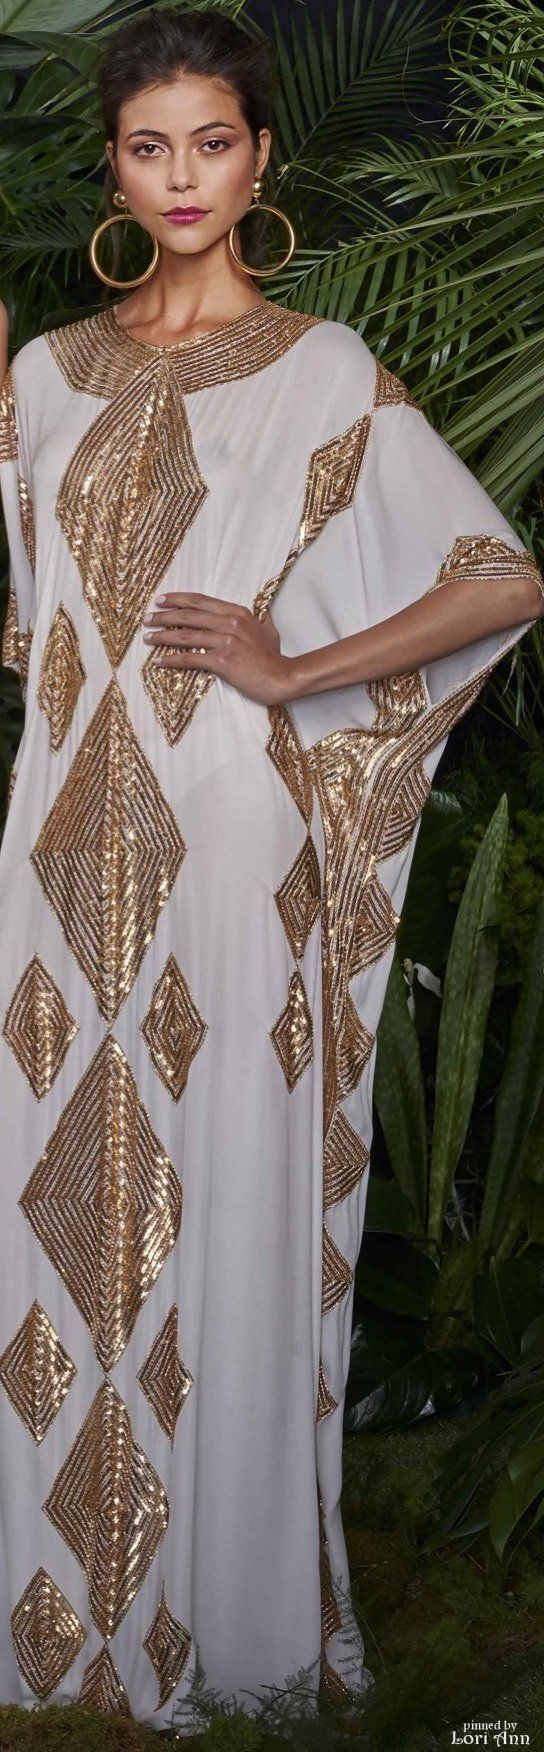 This is so Egyptian and Aztec themed. I could really see someone like Jennifer Lopez or Sofia Vergara looking absolutely stunning in this gorgeous gown.